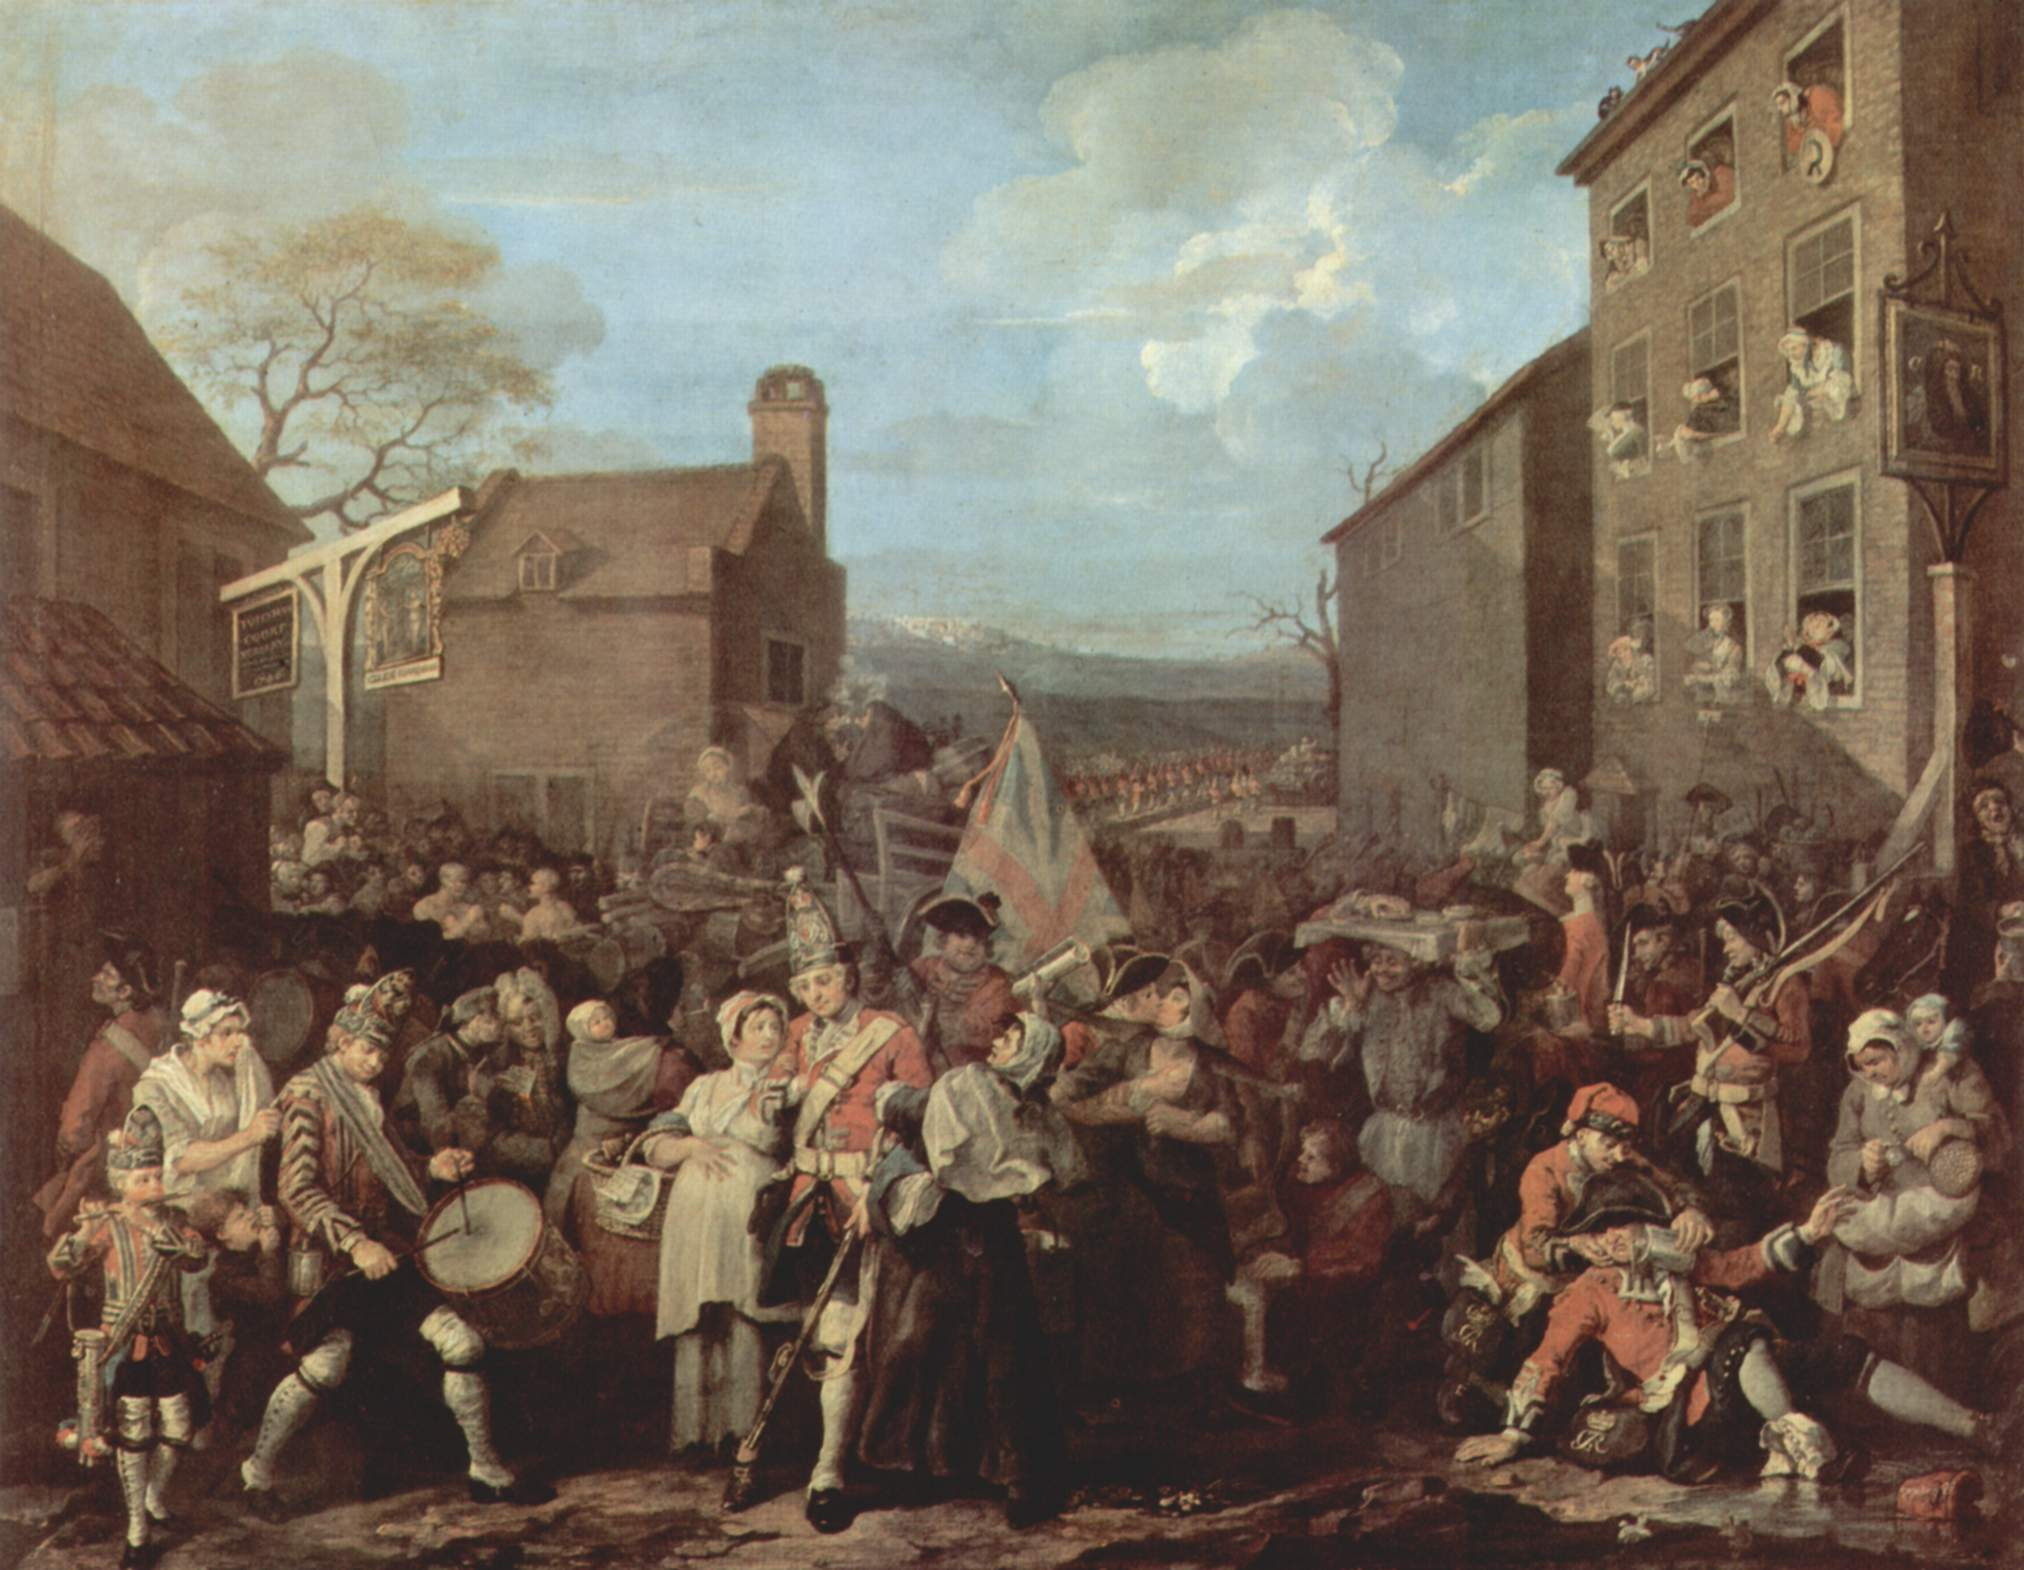 La Marcha de los Guardias a Finchley, por William Hogarth, 1750